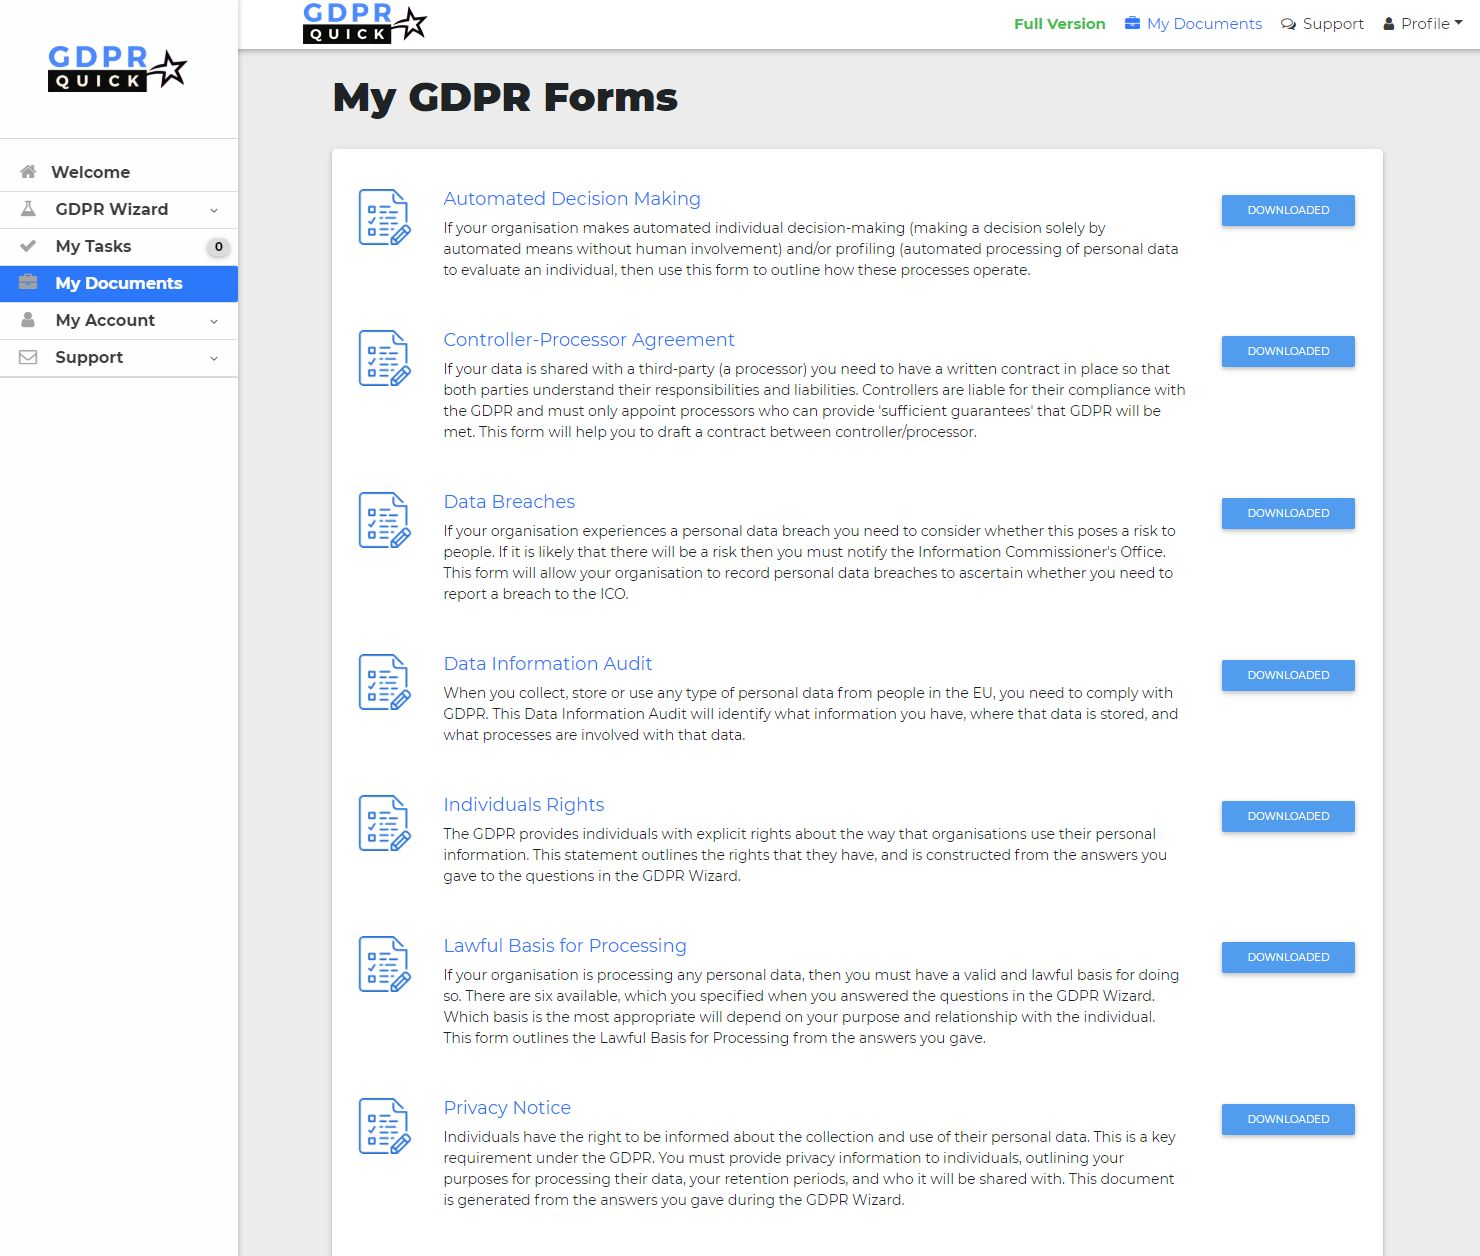 GDPR Forms & Downloads